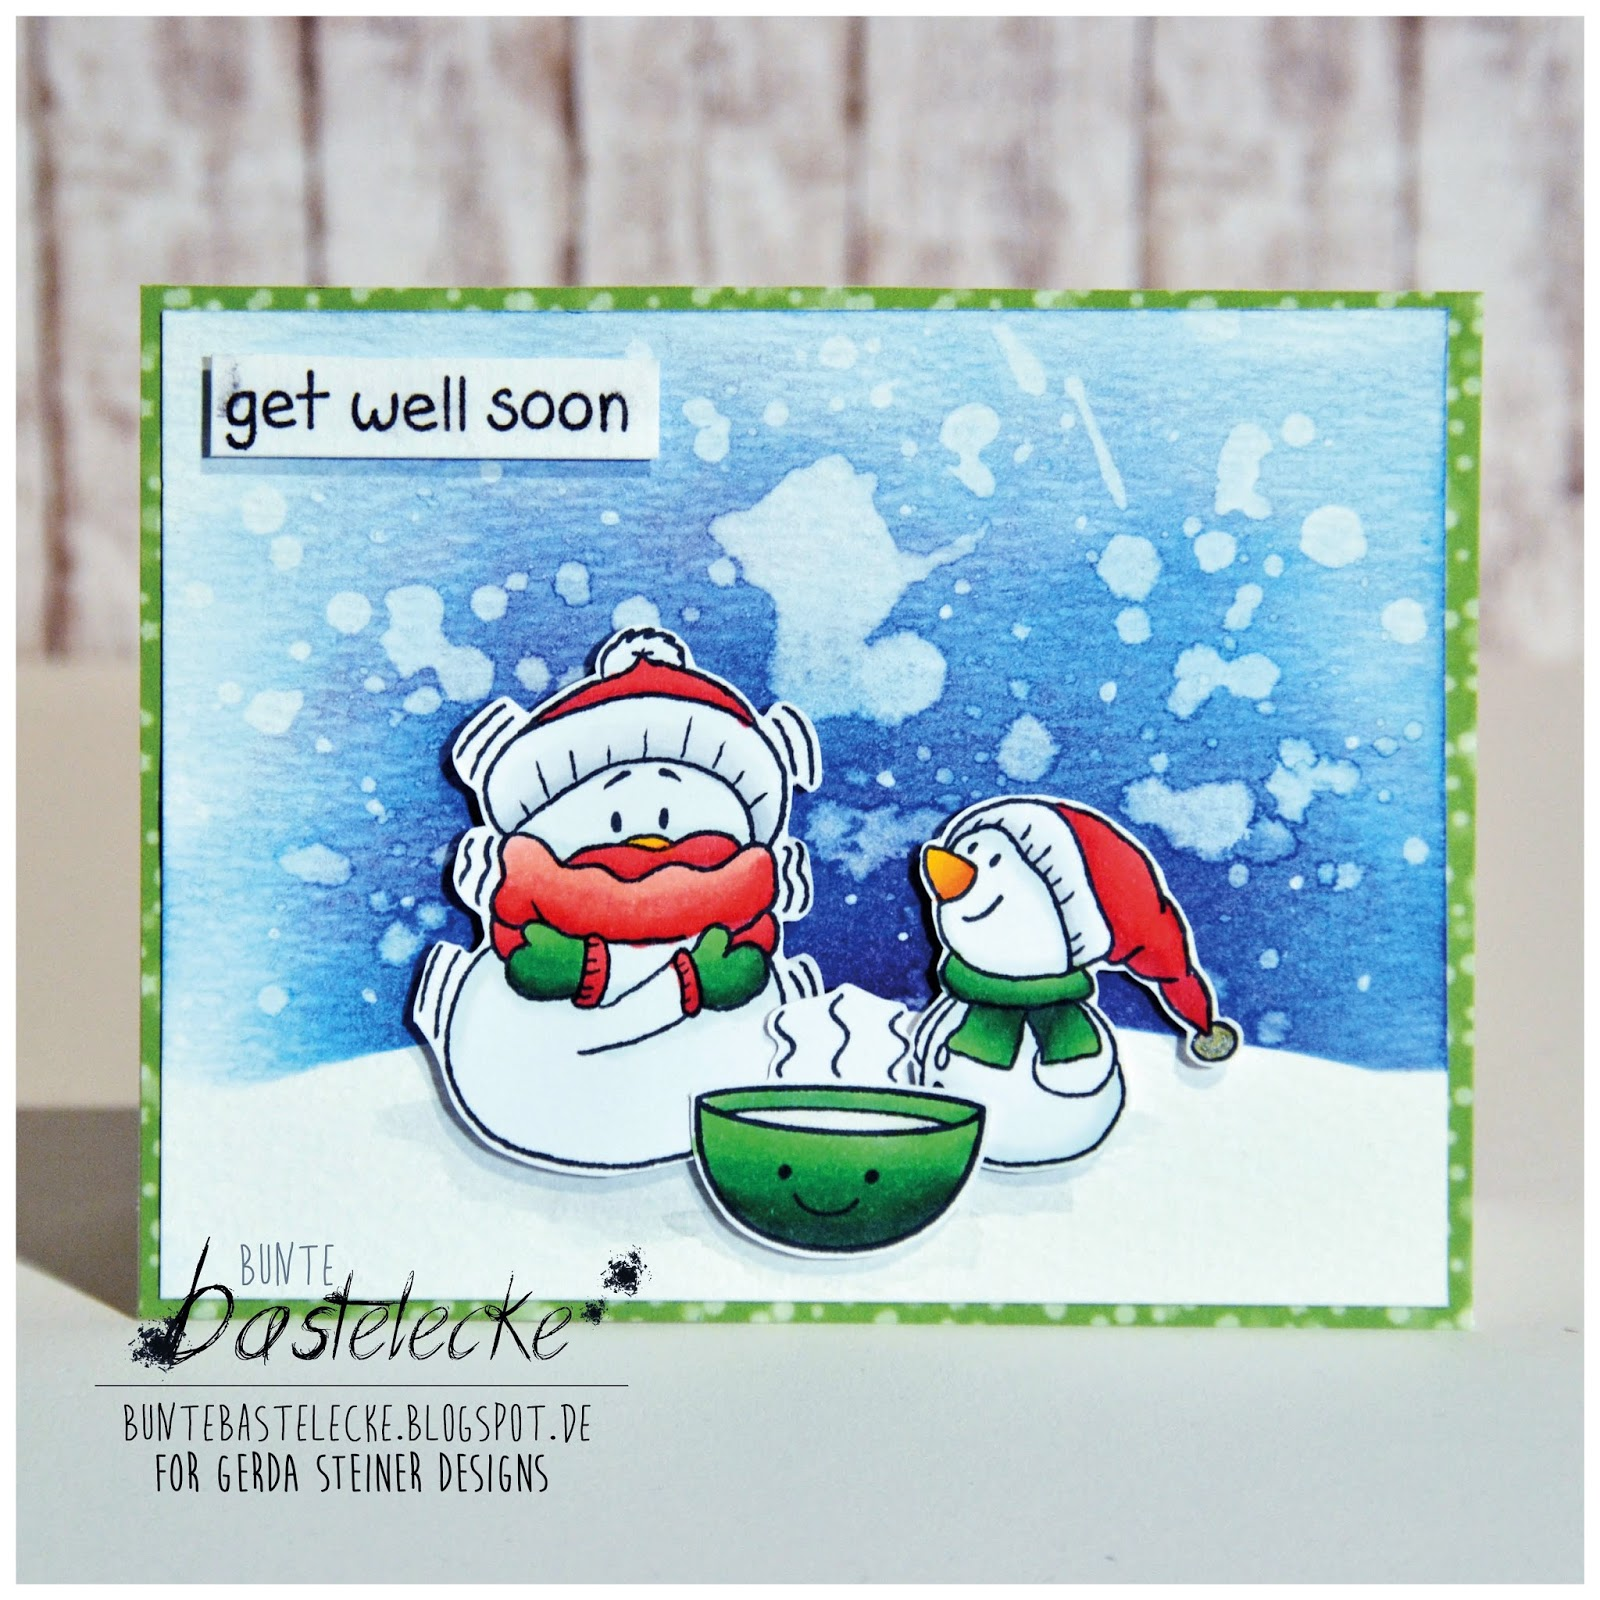 Mr Snowman On Christmas Is Getting Cold Coloring Page: Gerda Steiner Designs, LLC